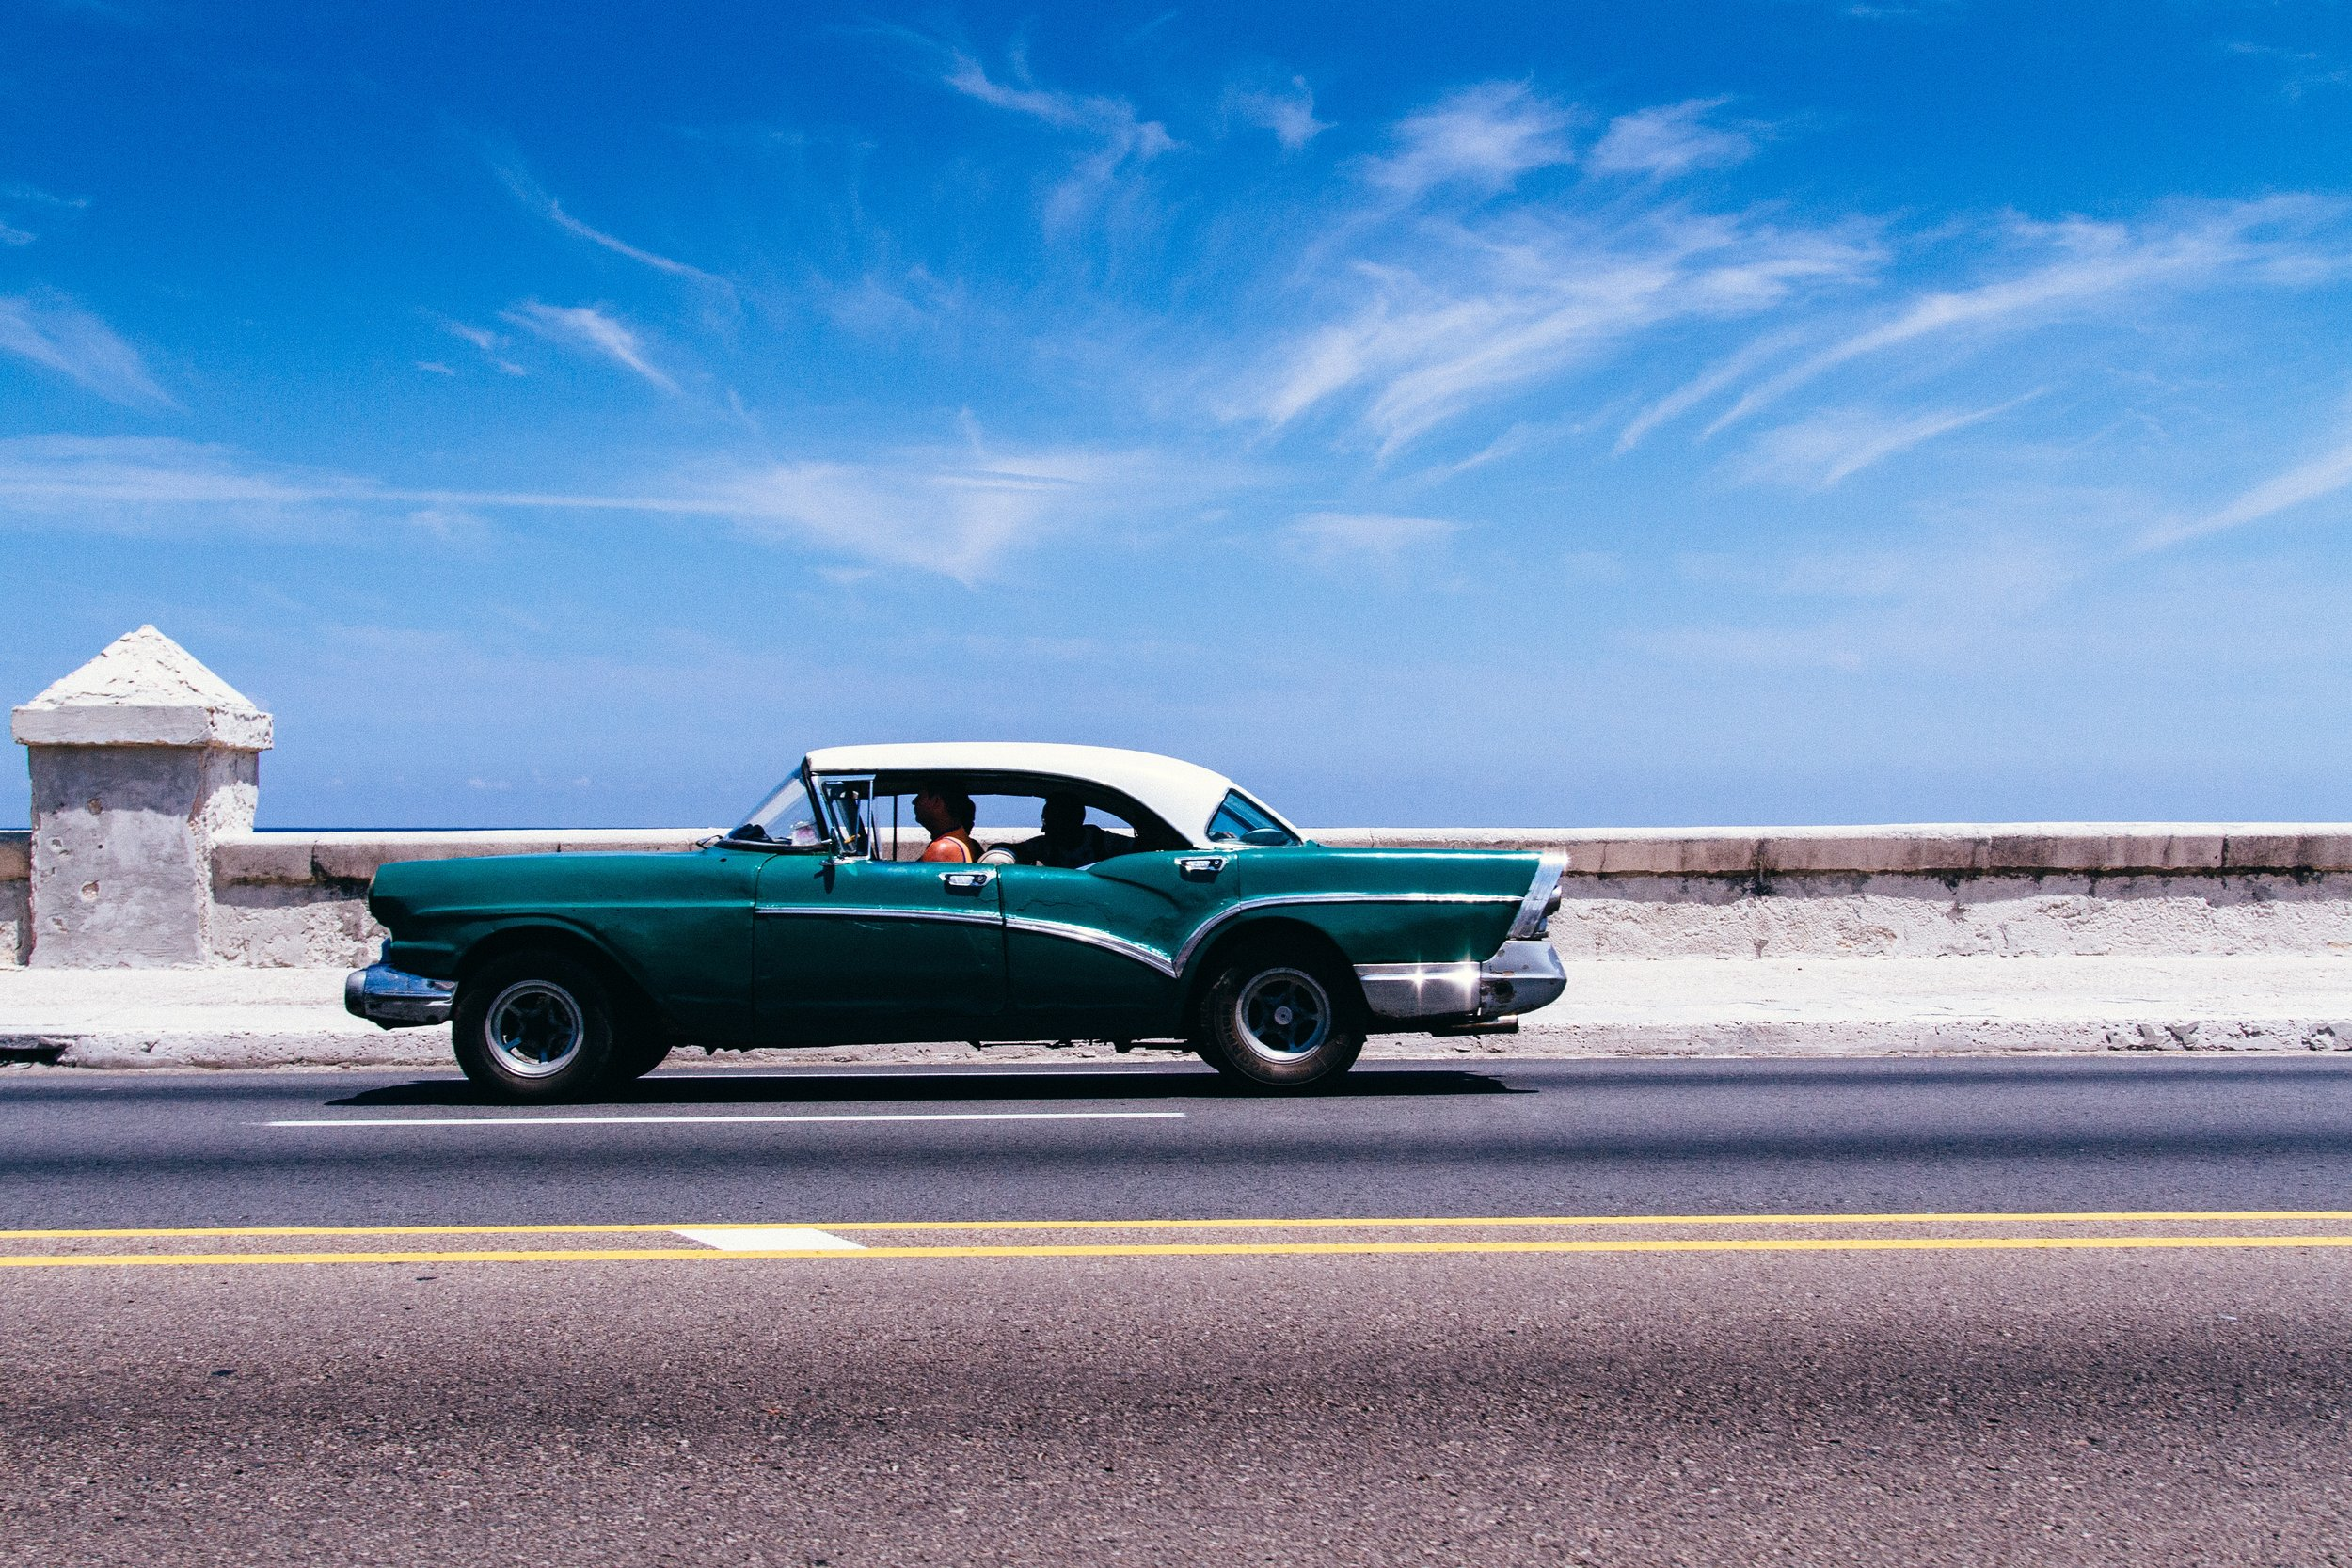 A vintage convertible drives by in Havana, Cuba.